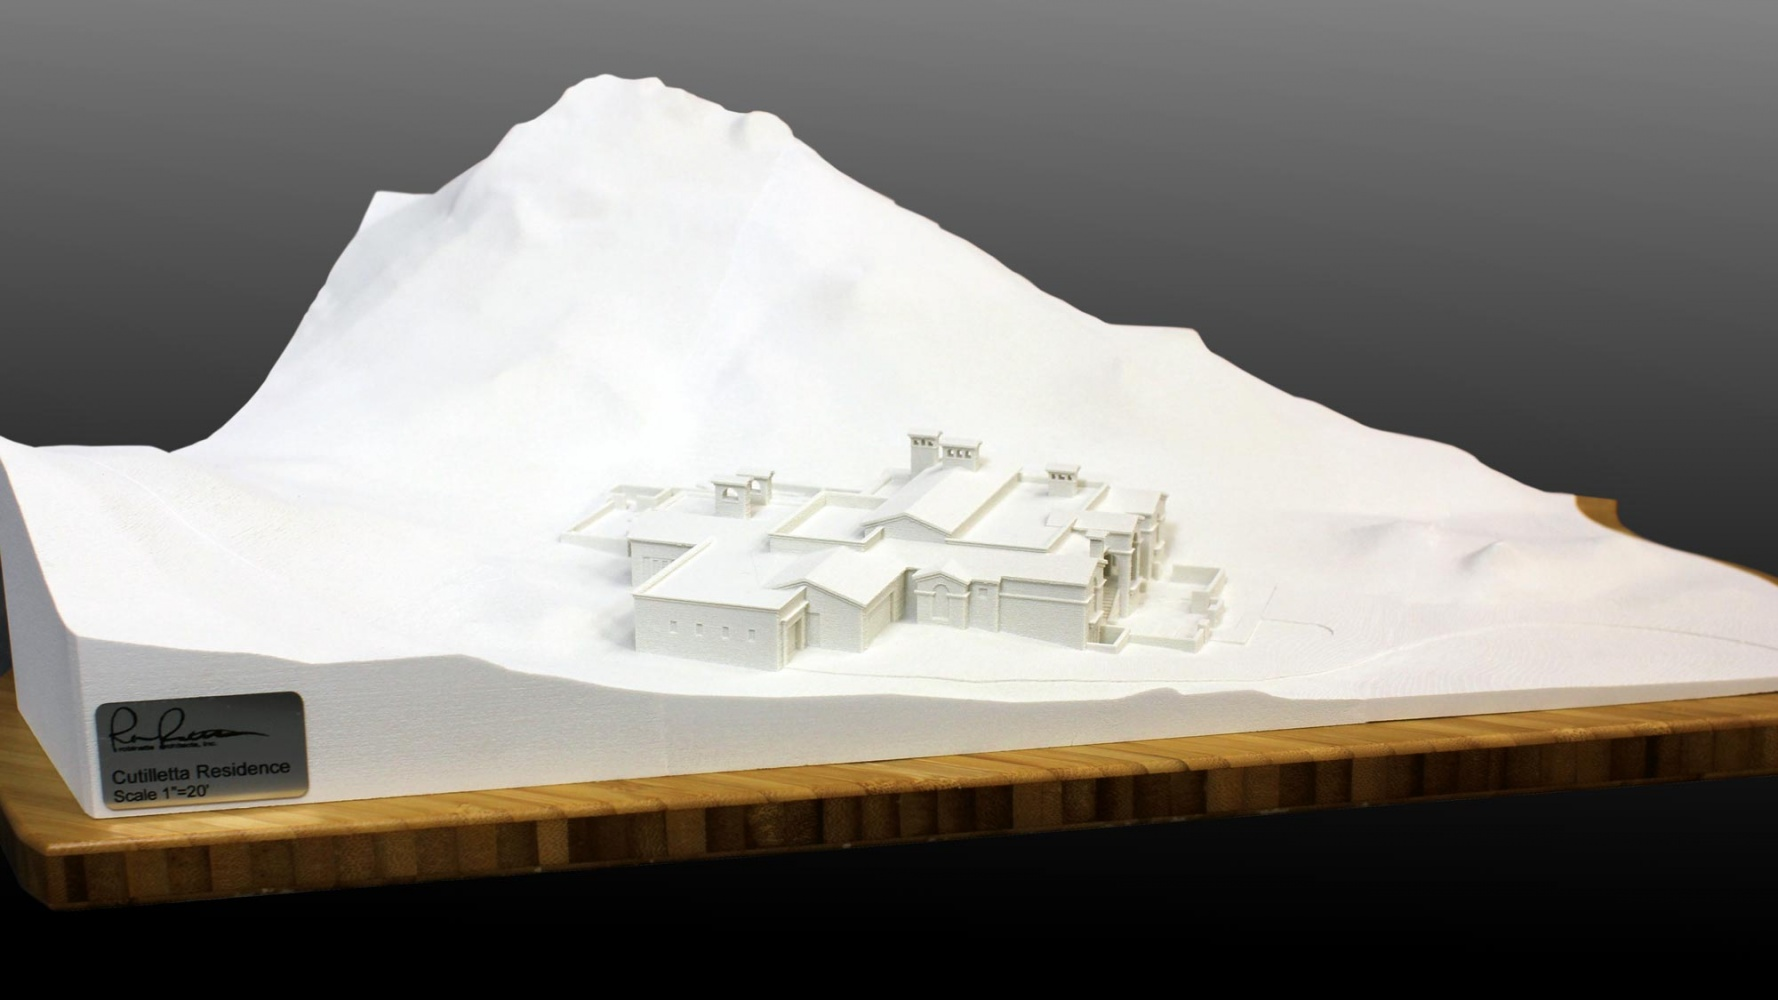 3d print of a residence in mountain setting